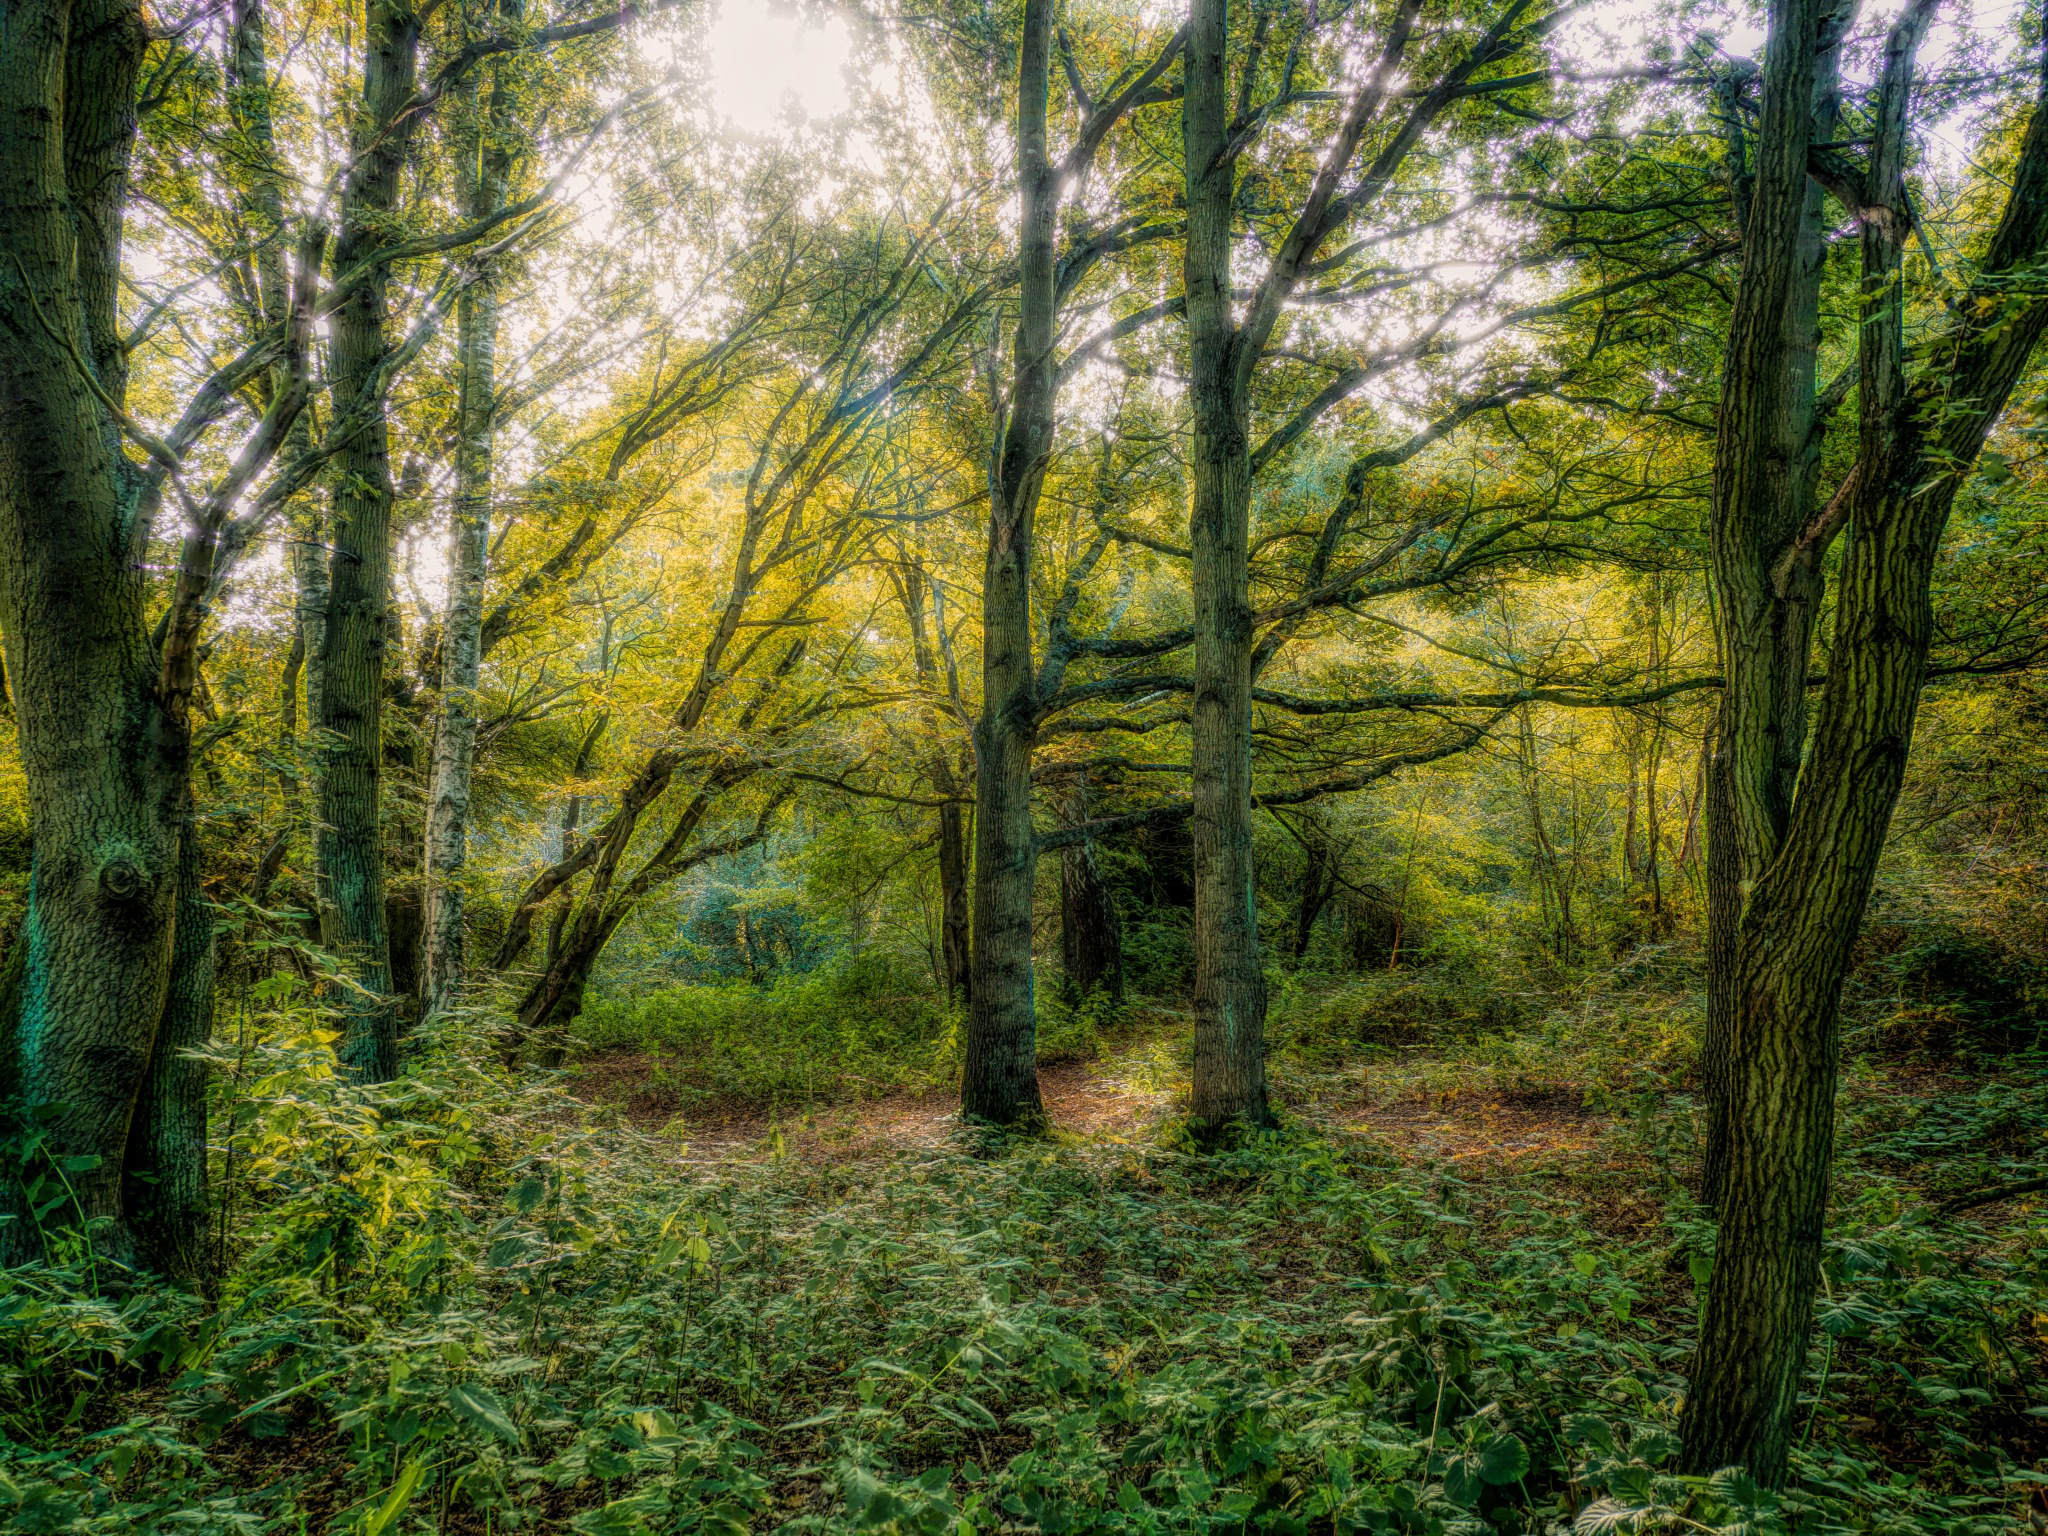 Morning through the trees by Sarah Walters